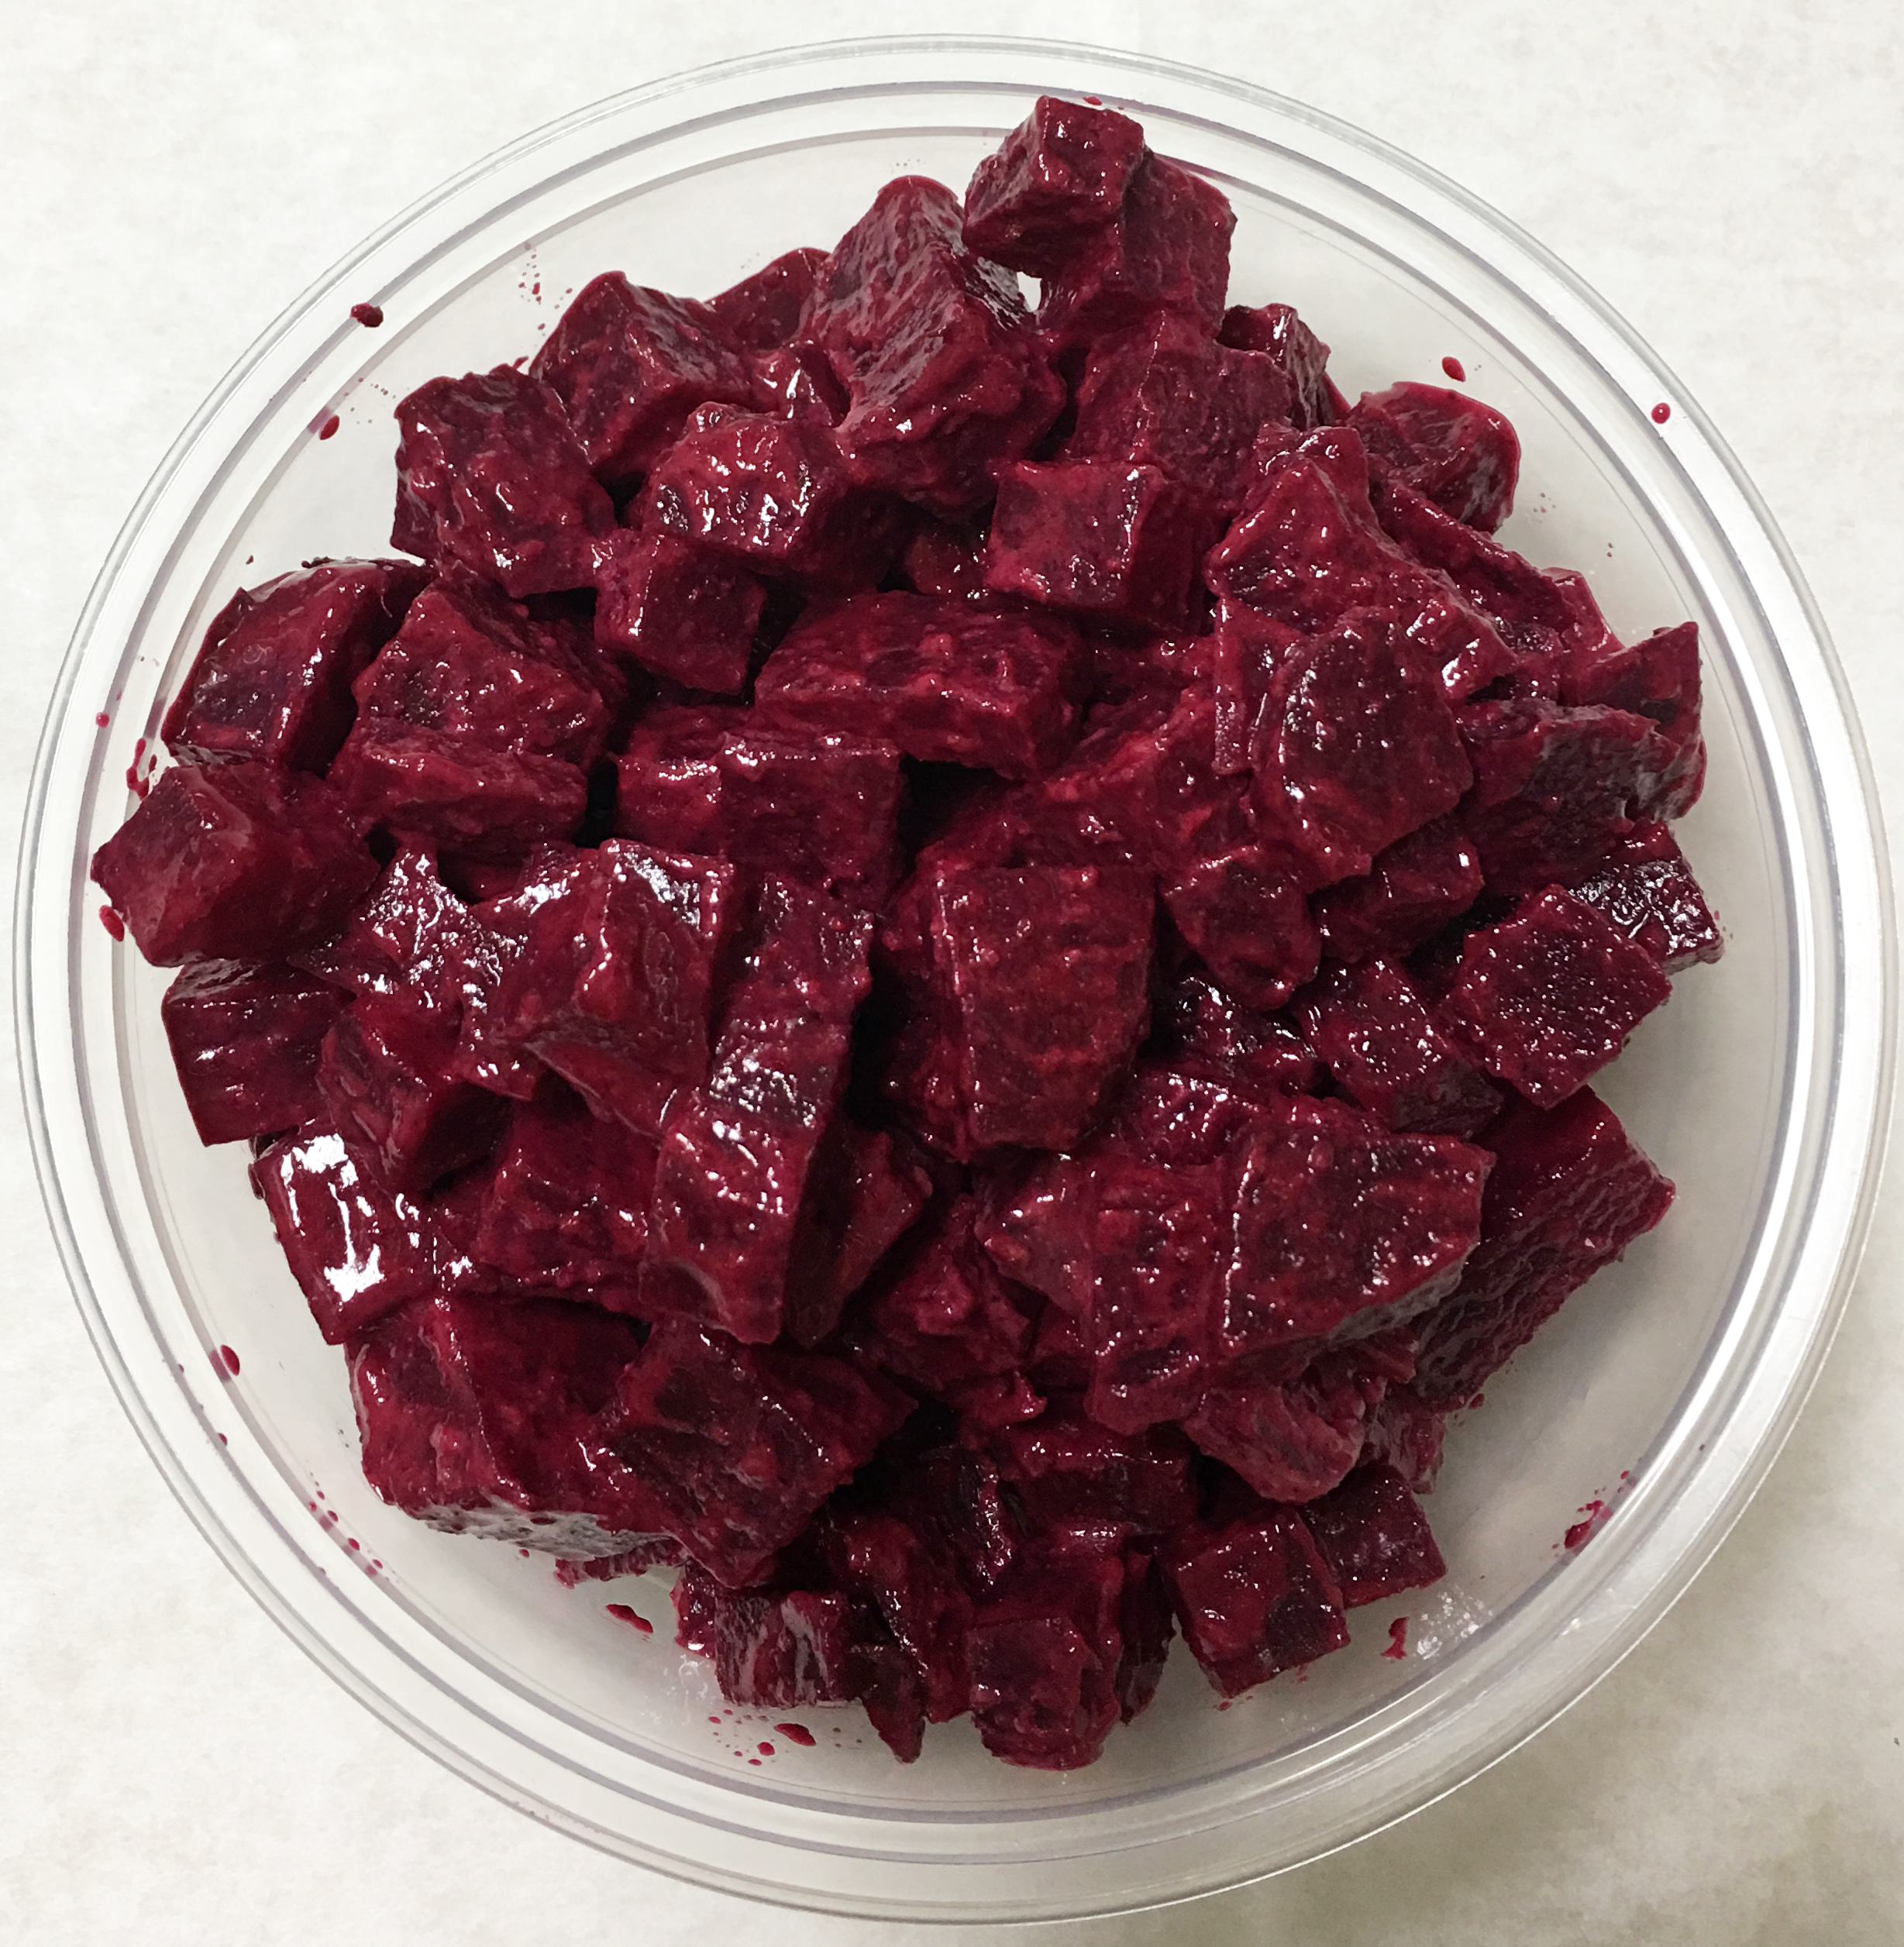 Red beets with a mustard dressing.